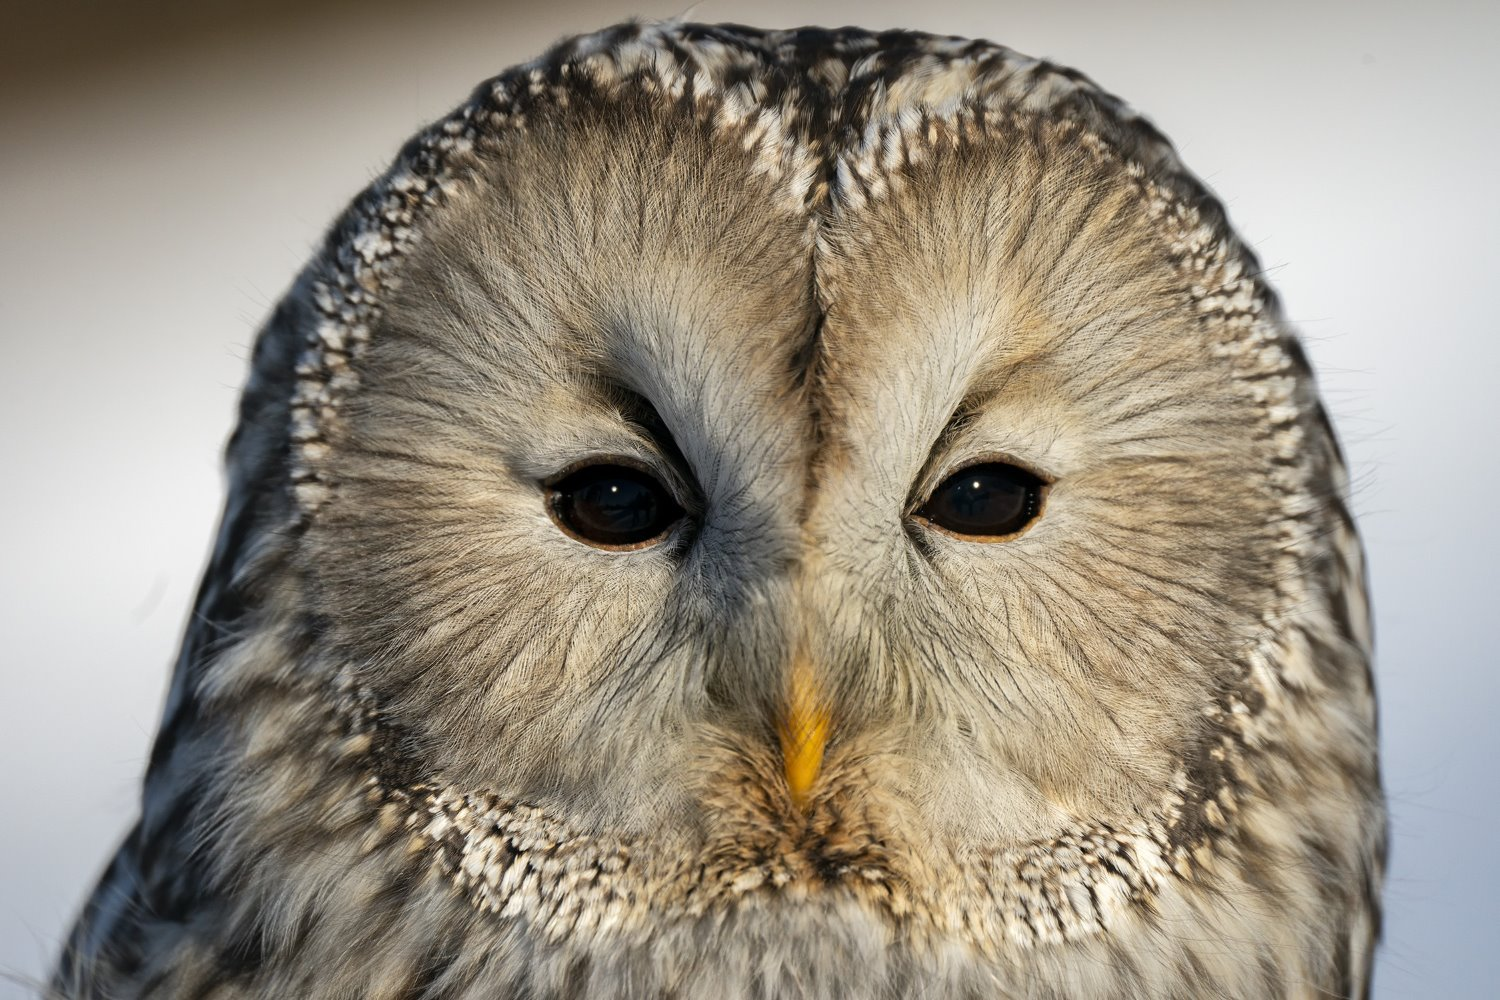 barred owl face close-up